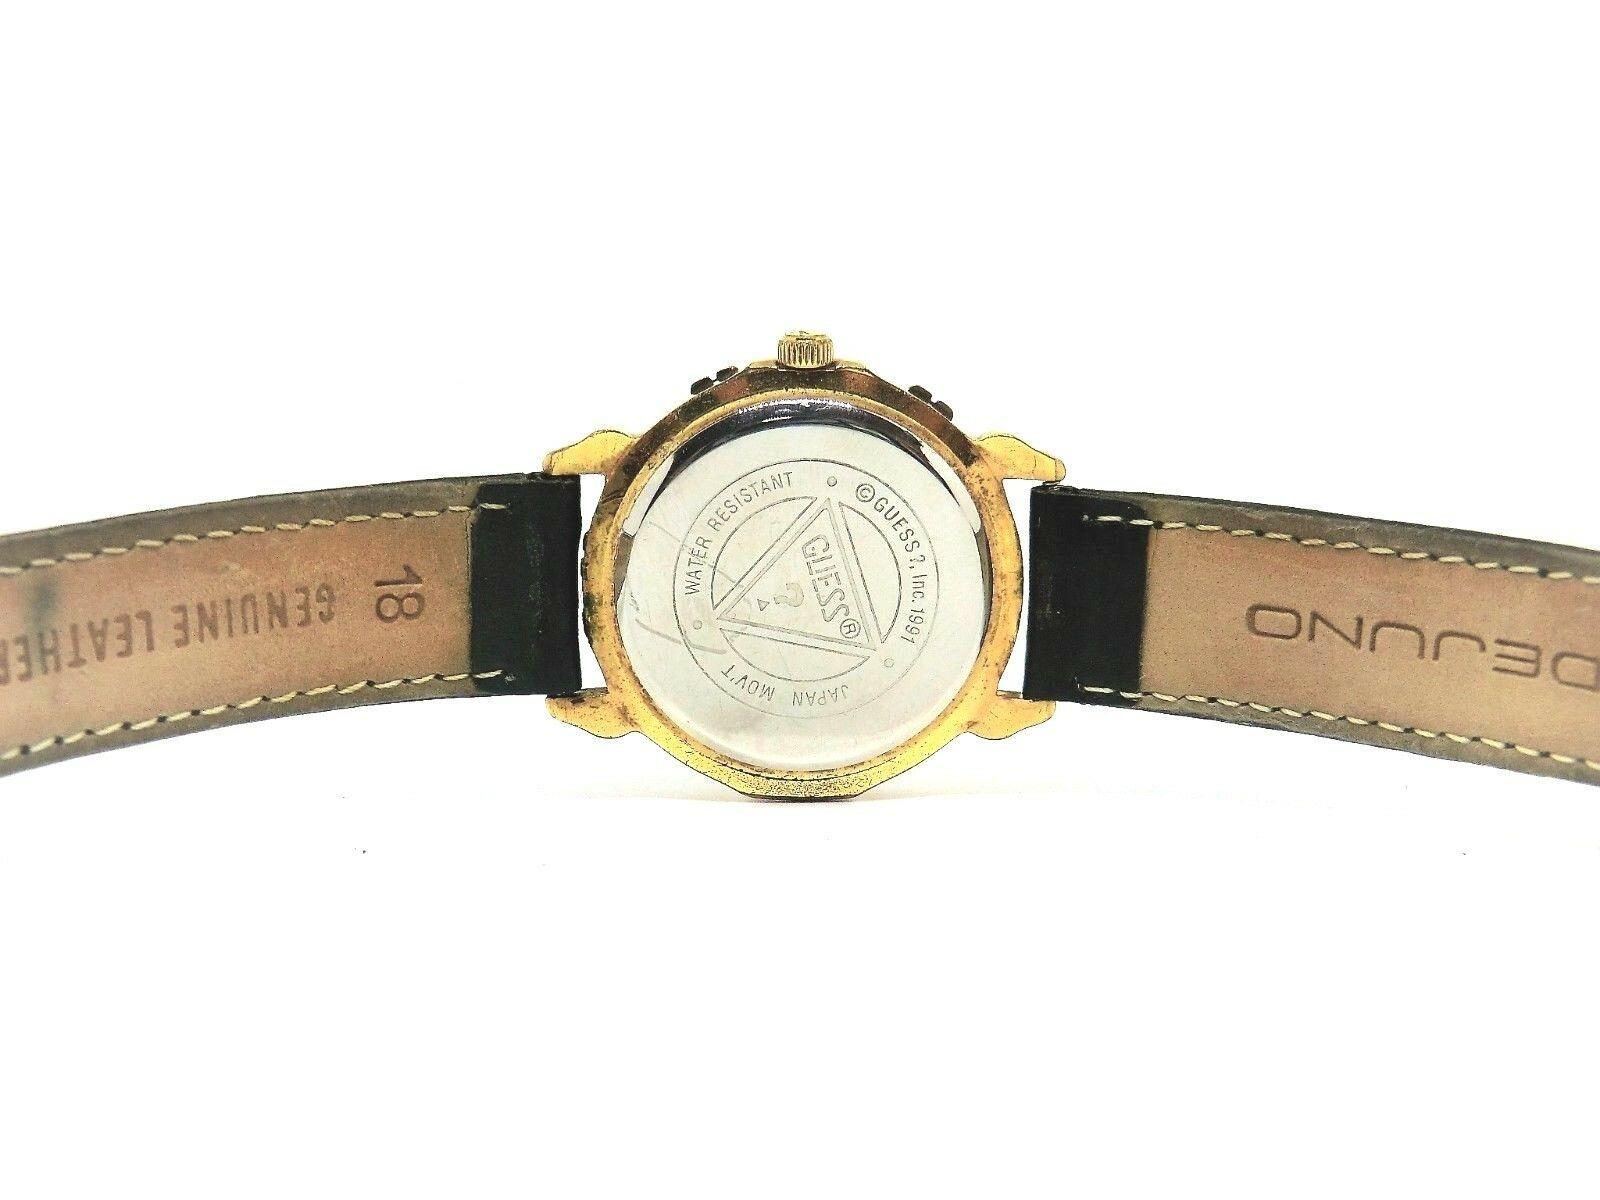 90s Retro GUESS Black Sun Moon Phase Unisex Watch Cleaned New Battery Installed